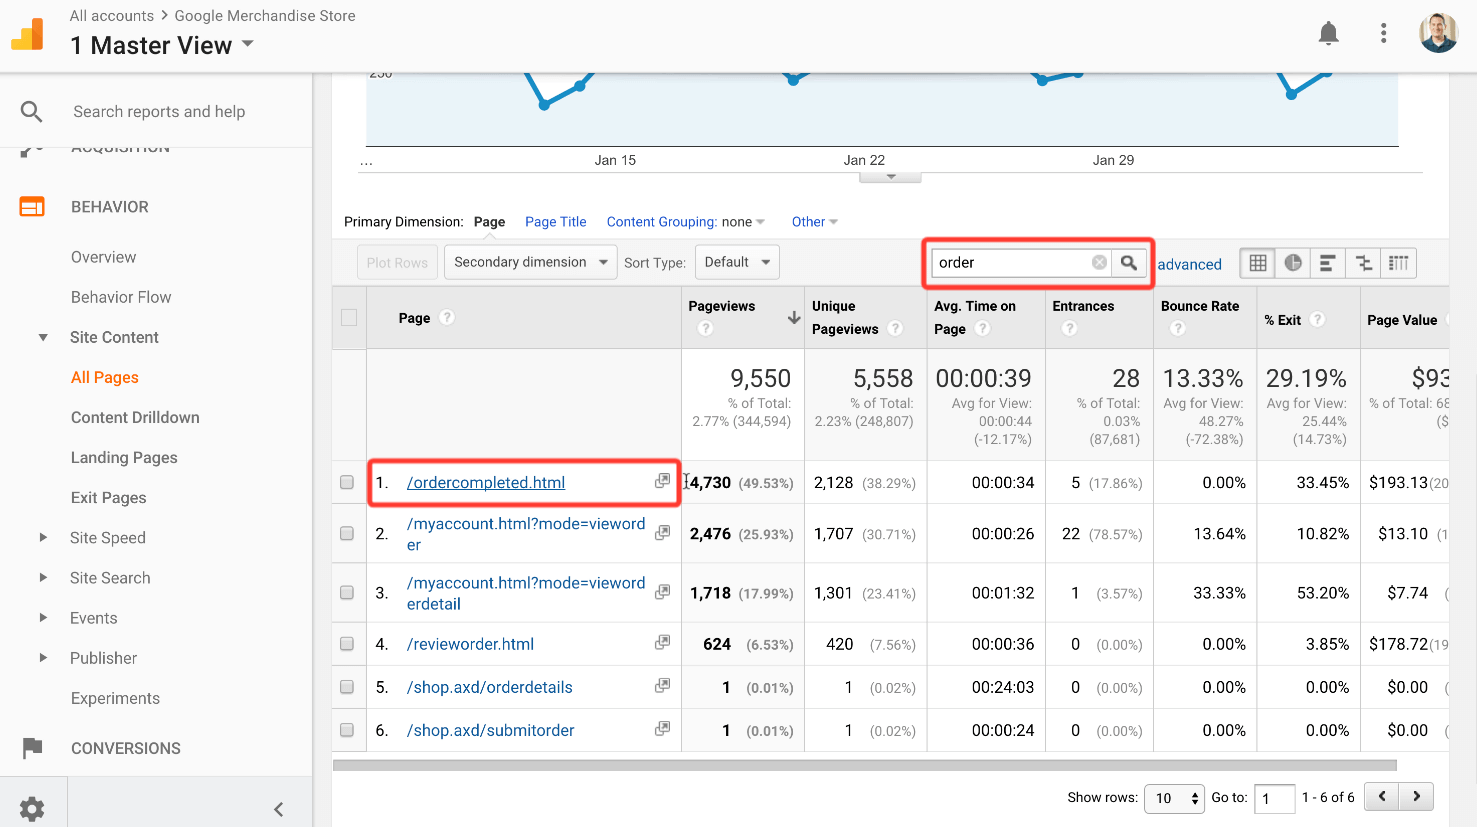 retroactive Google Analytics conversion tracking